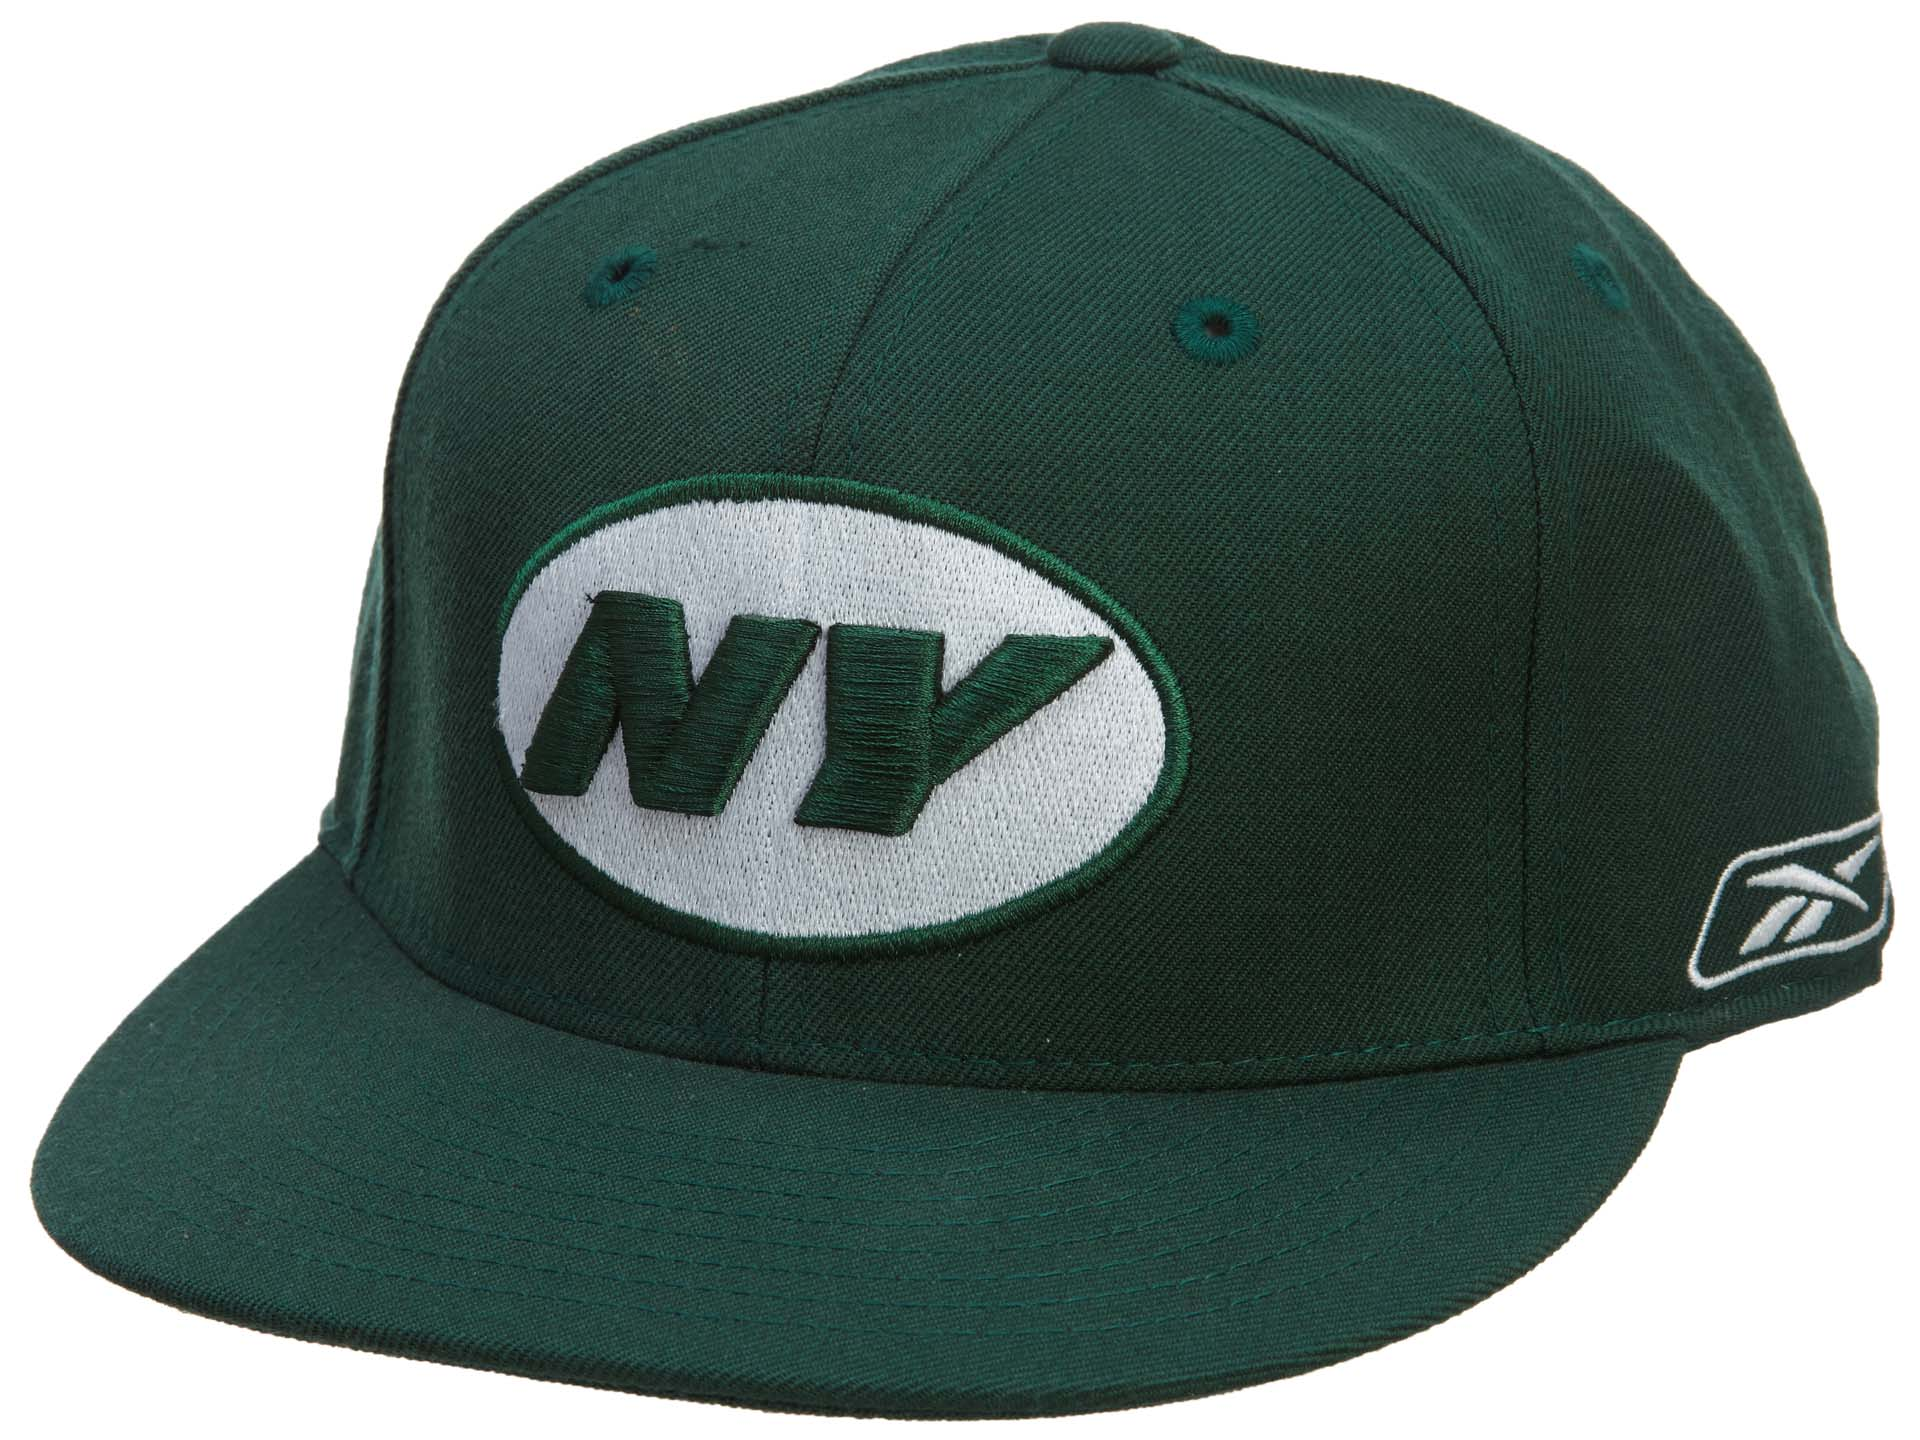 Reebok New York Jets Fitted Hat Mens Style   Hat275 – Sneaker Experts cb27622de7b